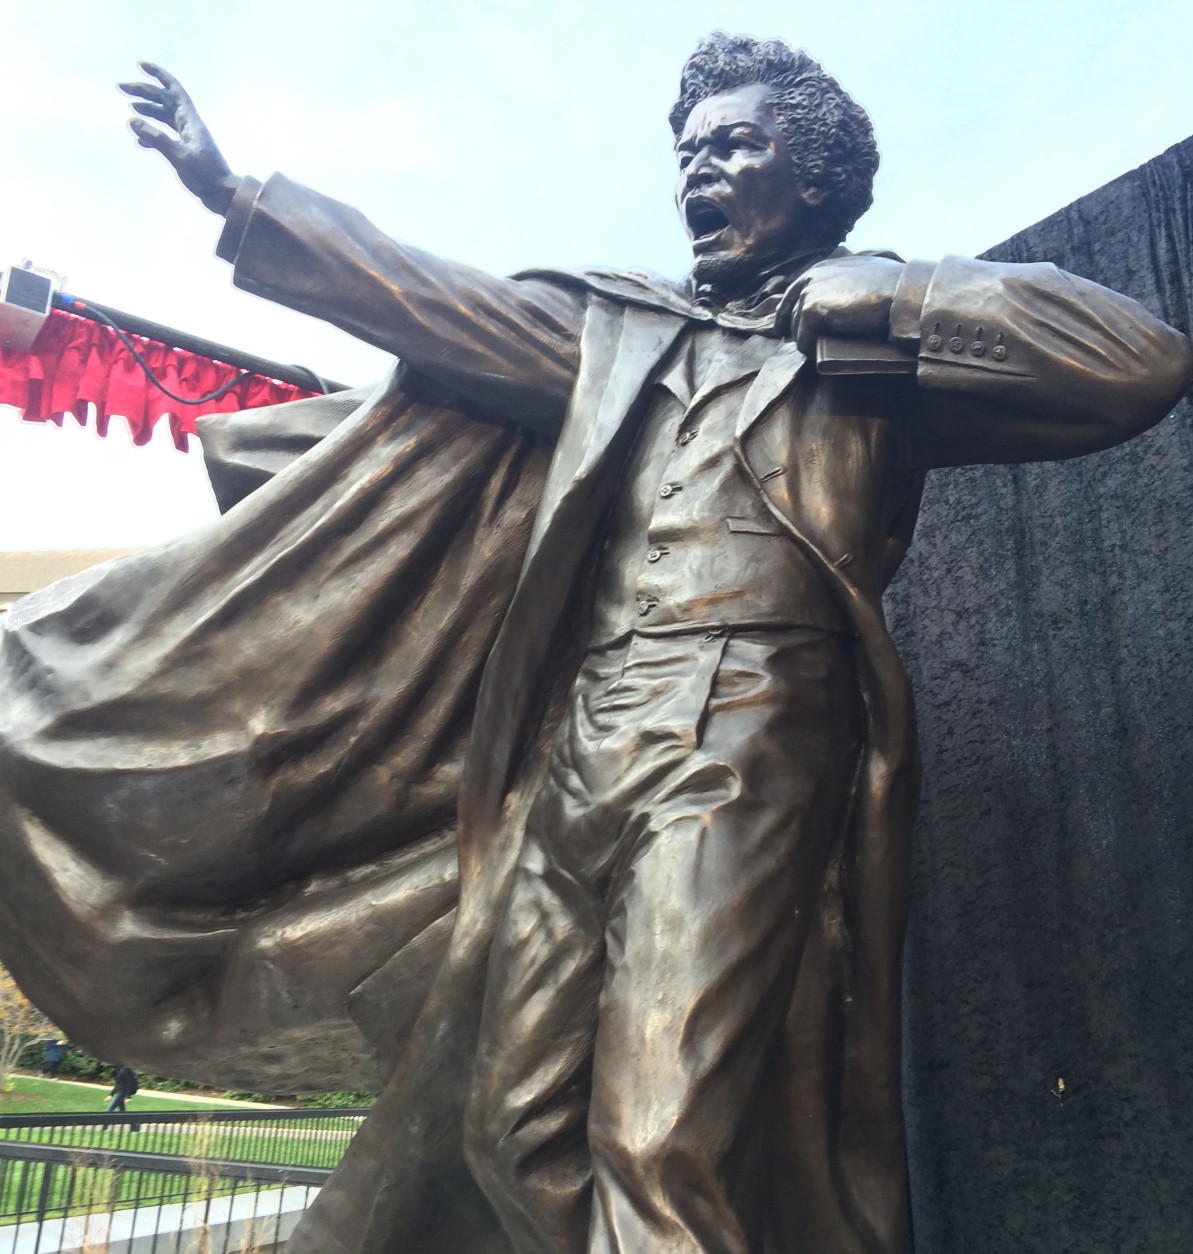 The bronze statue of Frederick Douglass portrays a youthful Douglass, 15 years before the start of the Civil War, his cape flowing from his shoulders, right arm thrust forward, his mouth wide-open in exhortation. (WTOP/Dick Uliano)